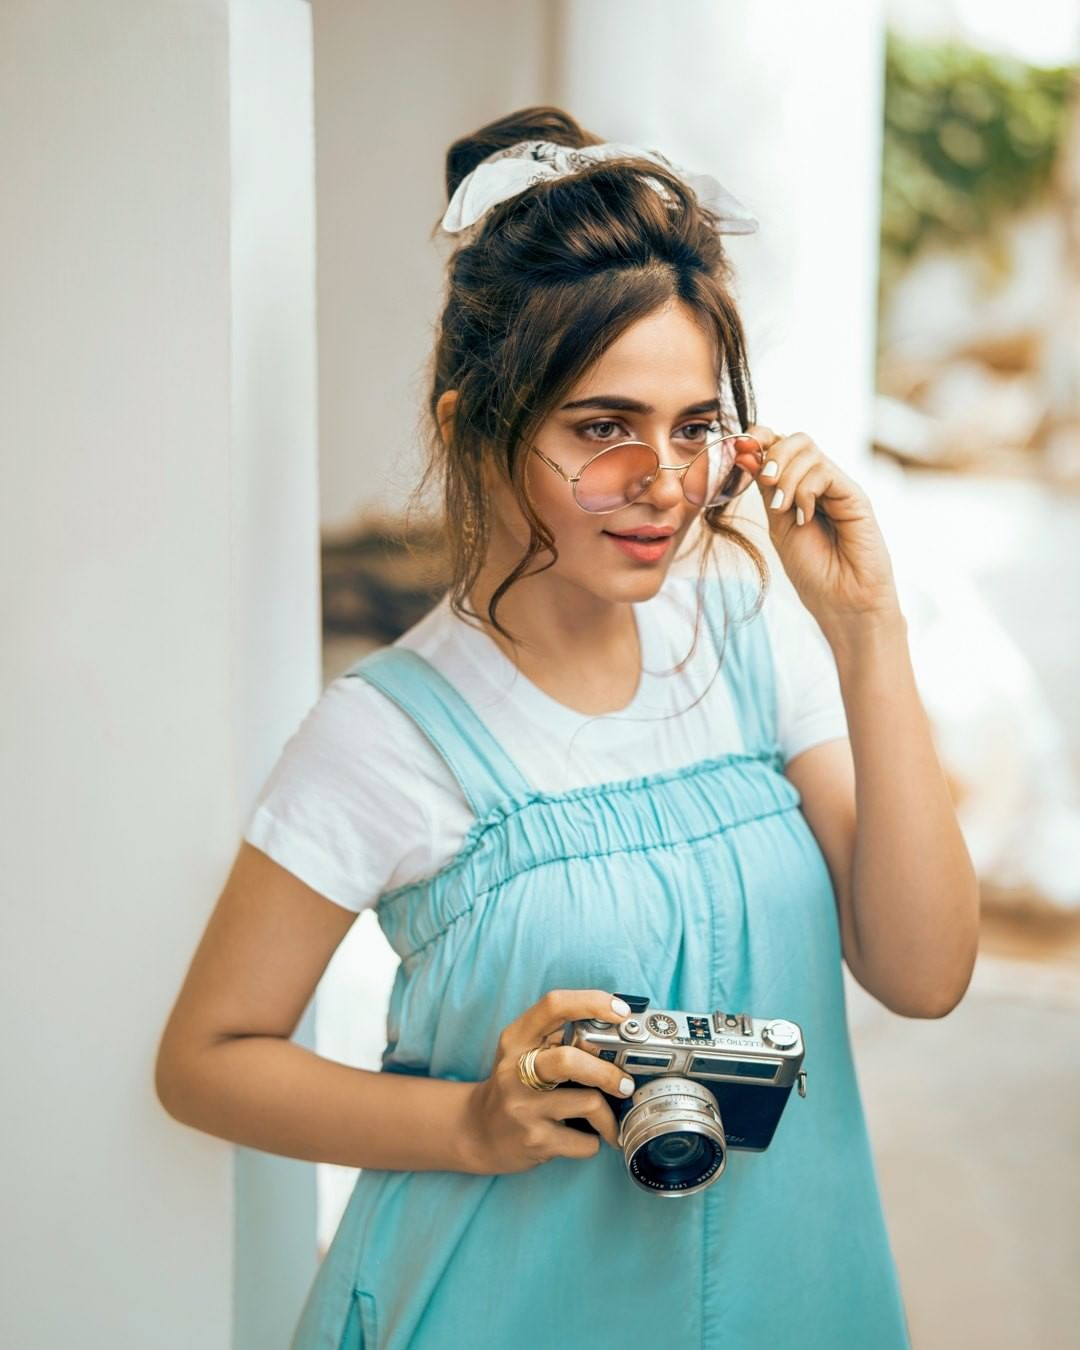 Sumbul Iqbal is Looking Gorgeous in her trendy look for Latest Photoshoot